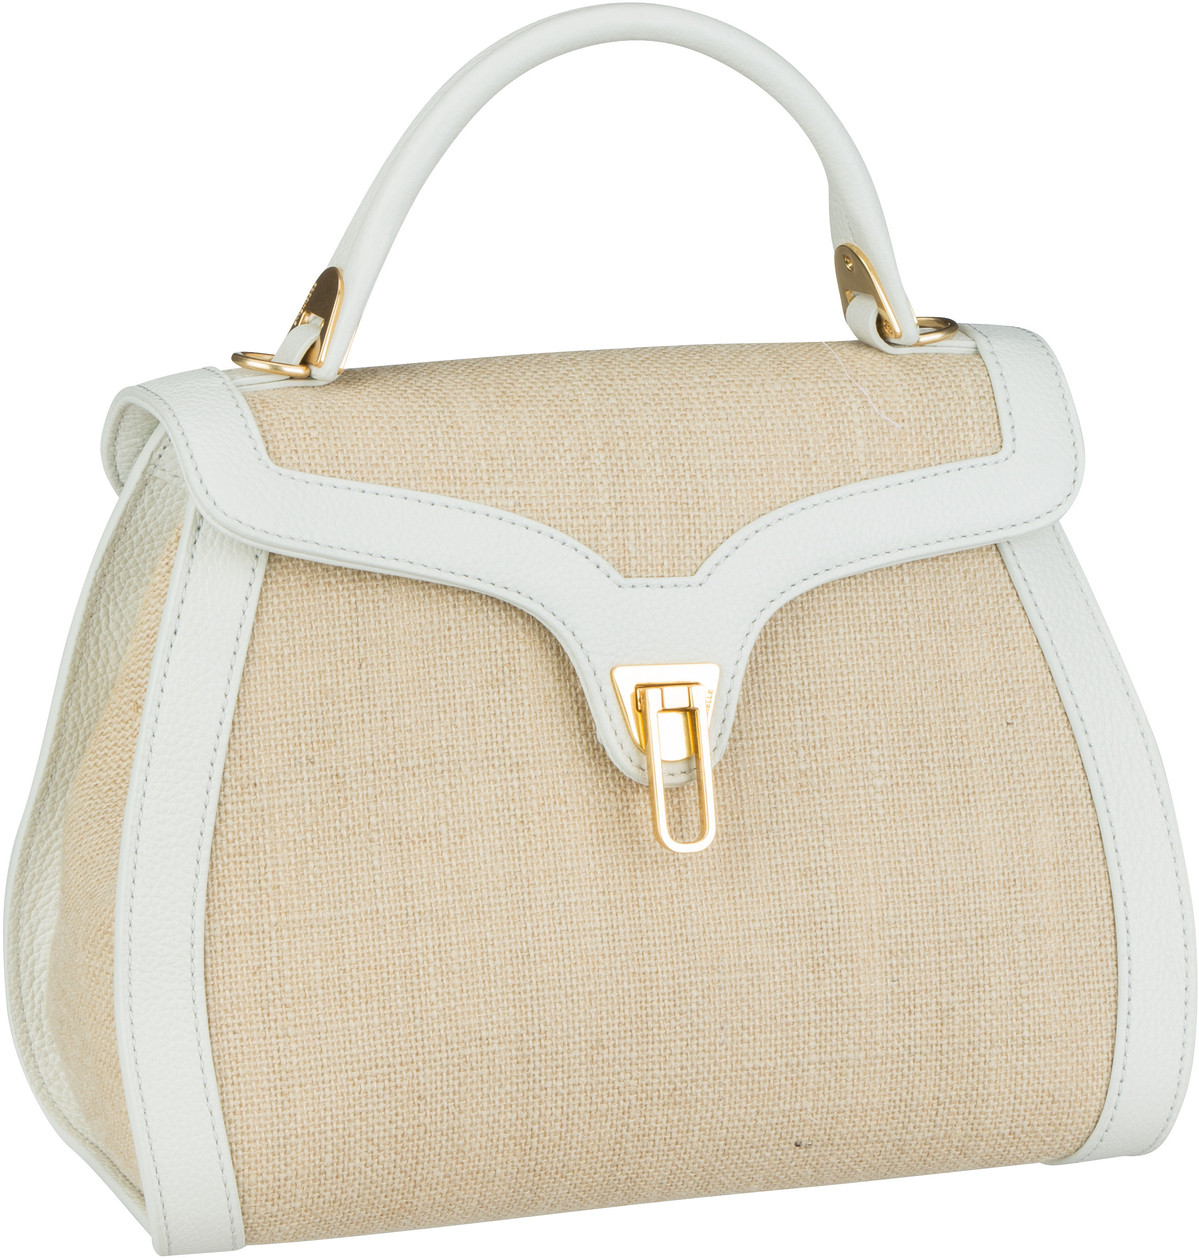 Handtasche Marvin Juta 1803 Natural/Chalk